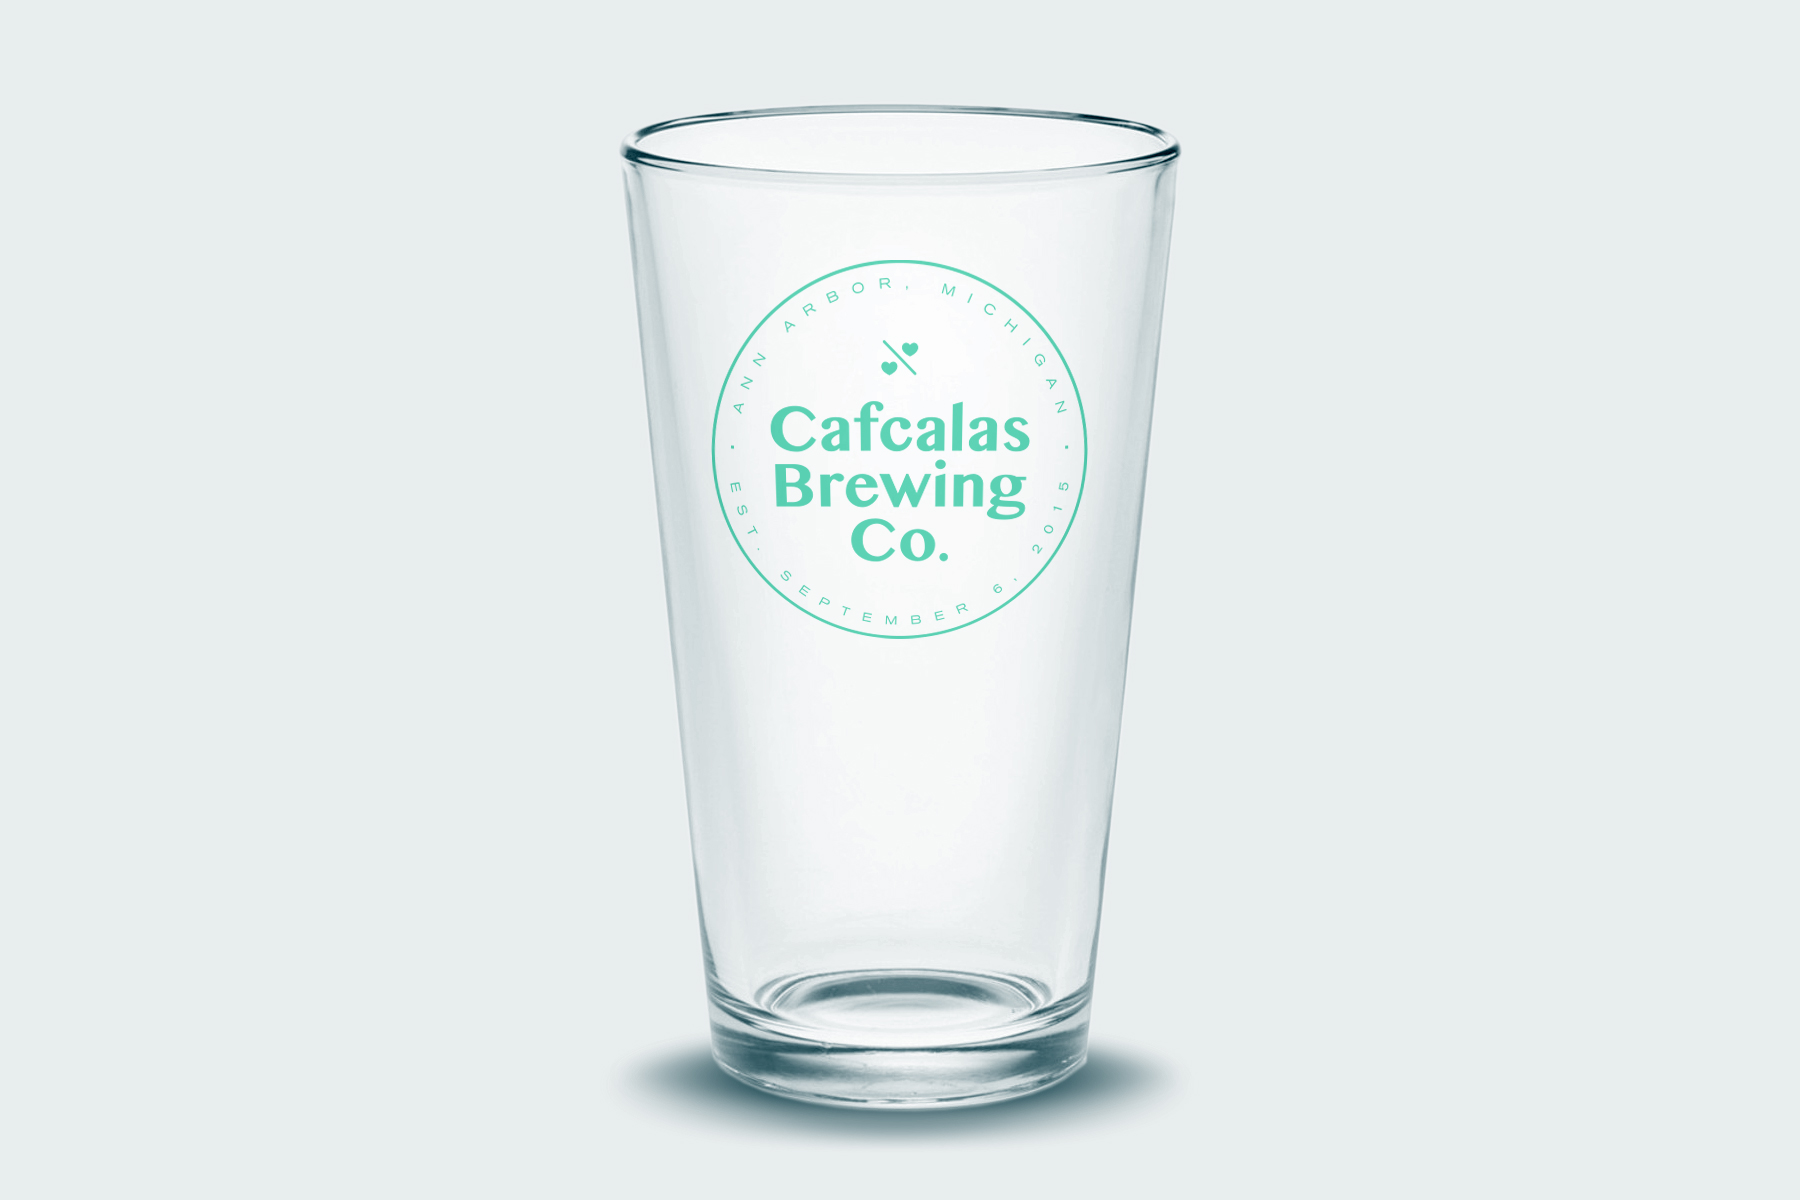 cafcalas-glass_2x3_2b.jpg